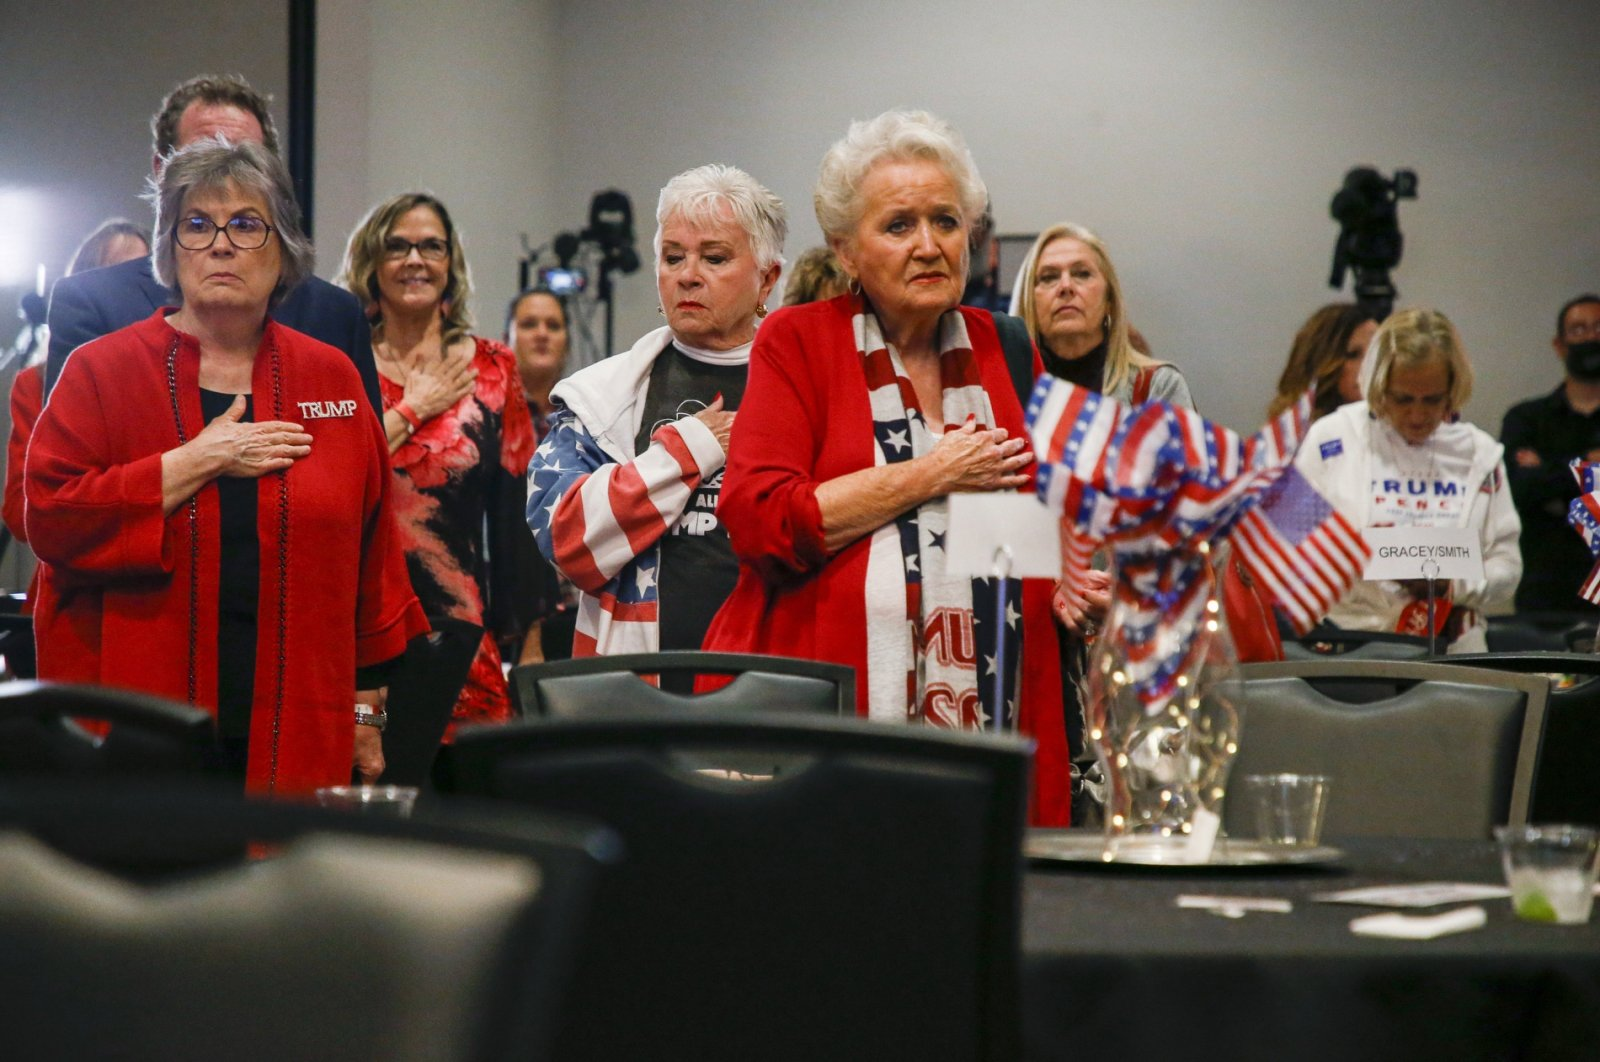 Supporters of President Donald Trump stand during the national anthem at an election results watch party sponsored by the Oklahoma Republican Party in Tulsa, Oklahoma, U.S., Nov. 3, 2020. (AP Photo)